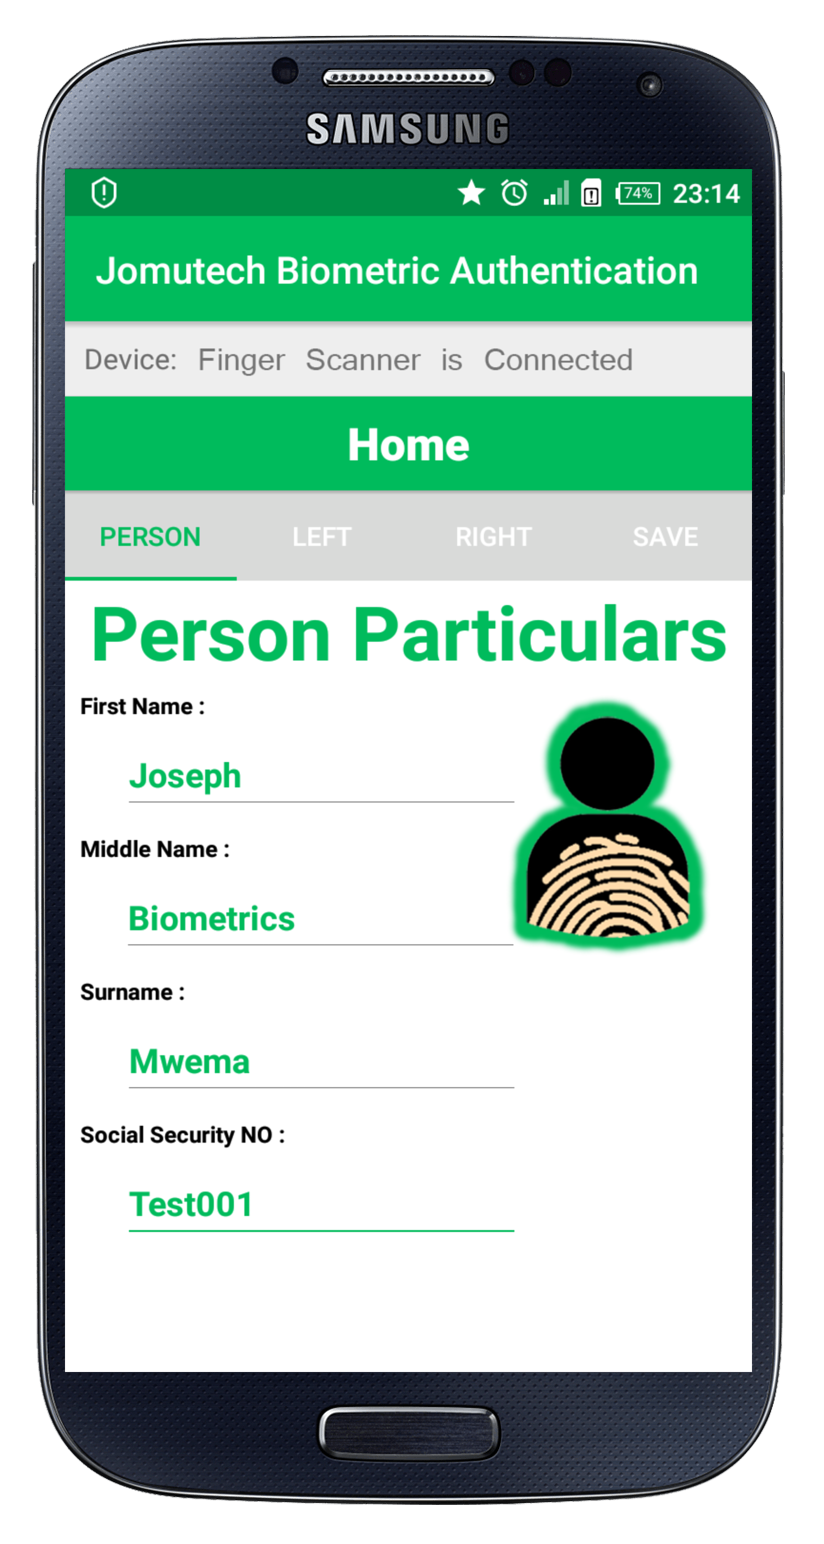 Android Biometric Fingerprint Authentication After Entering Person Particulars Data Registration